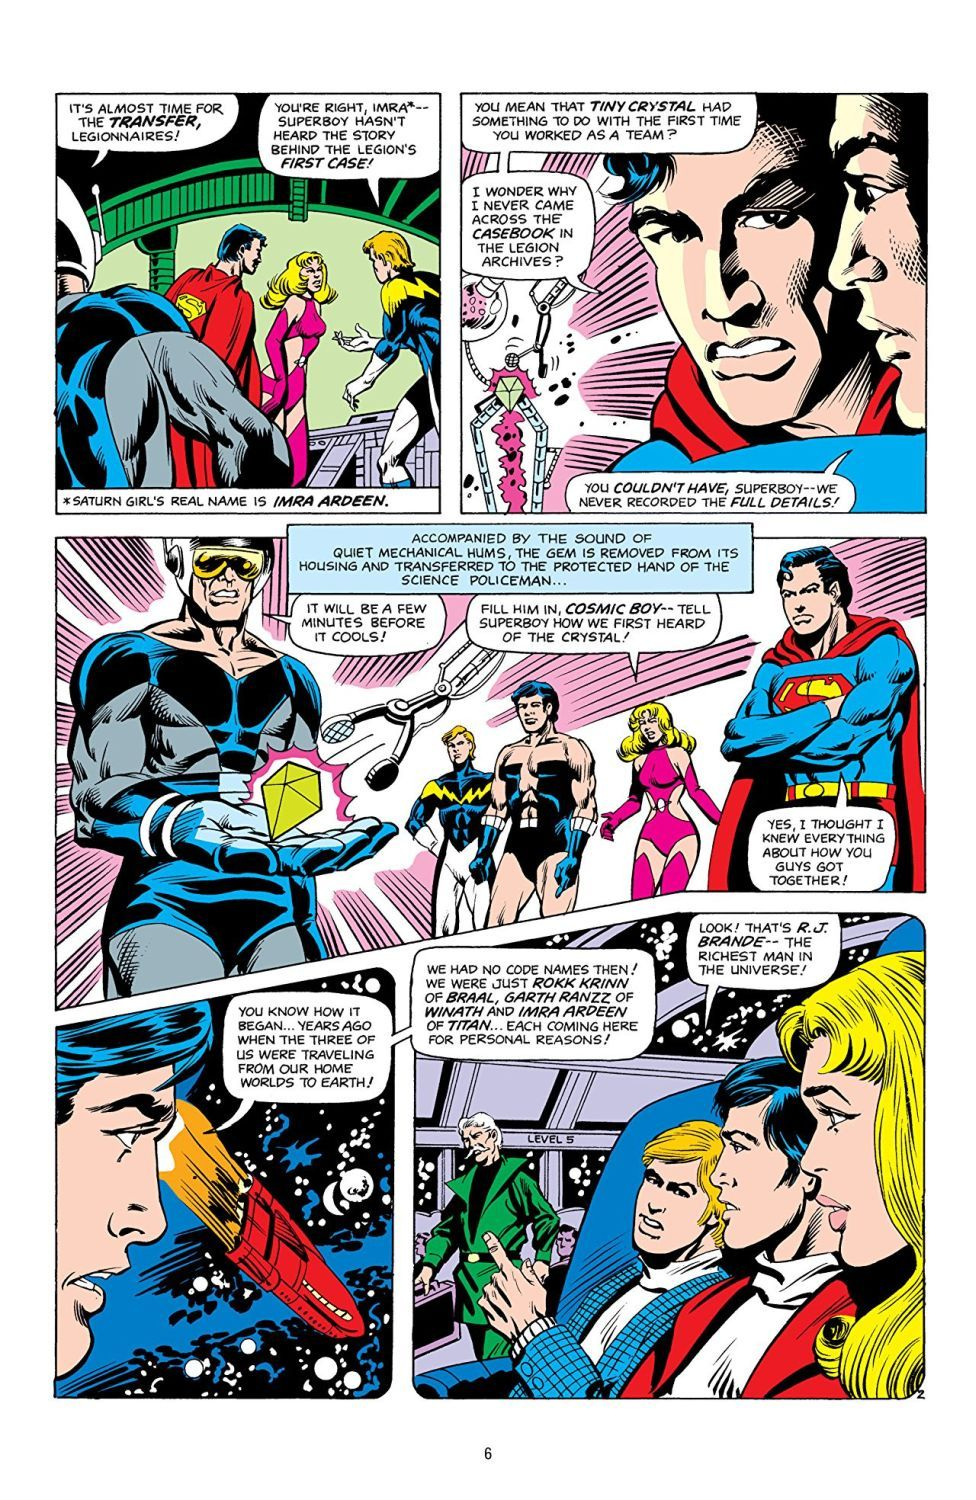 Superboy and the Legion of Super-Heroes Vol. 1-4 - 5